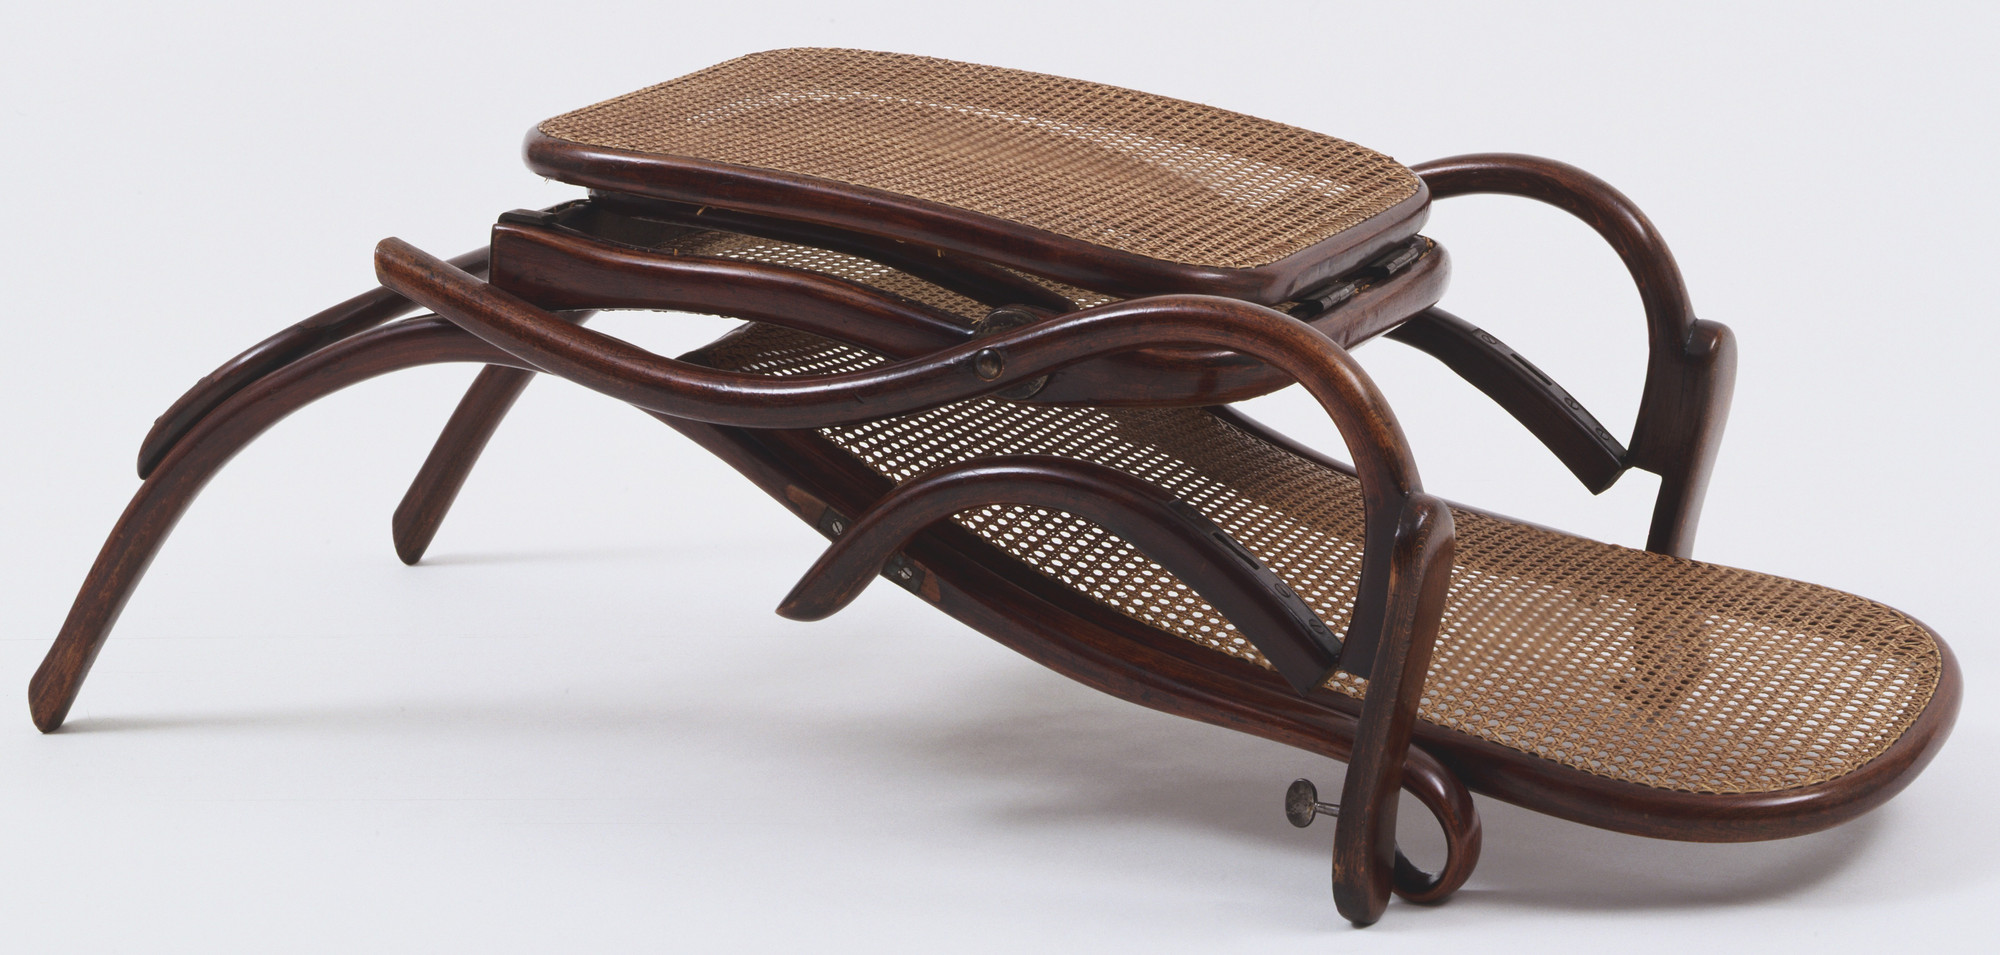 Michael Thonet. Folding Lounge Chair with Foot Rest. c. 1865